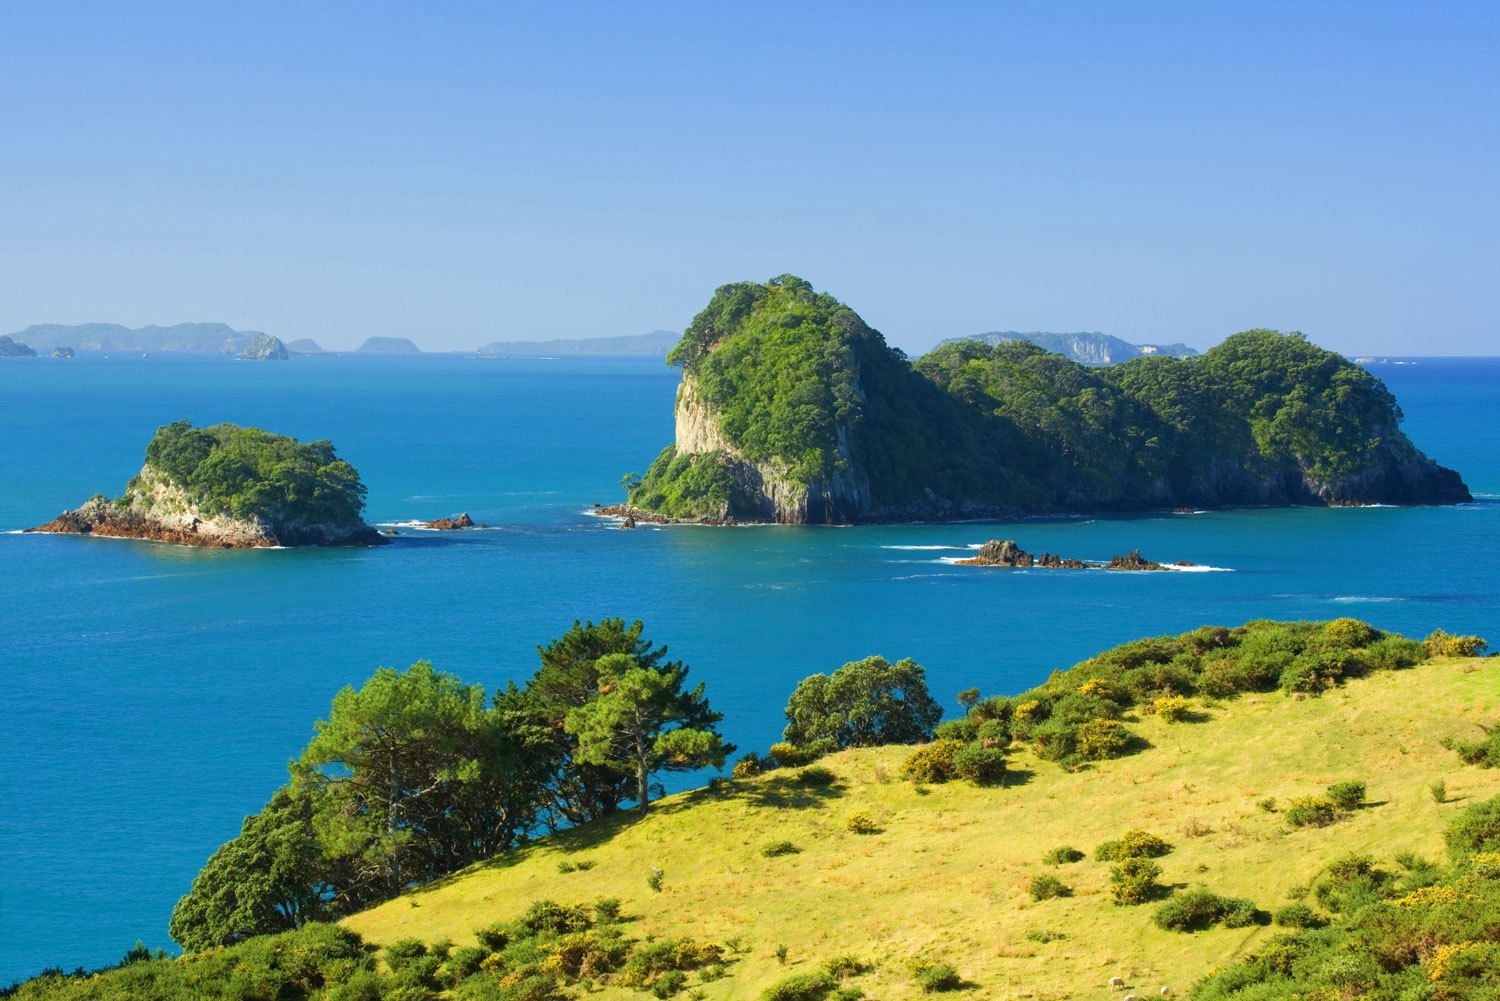 Coromandel town and its bay of green and blue hues, dotted with islands and capes.